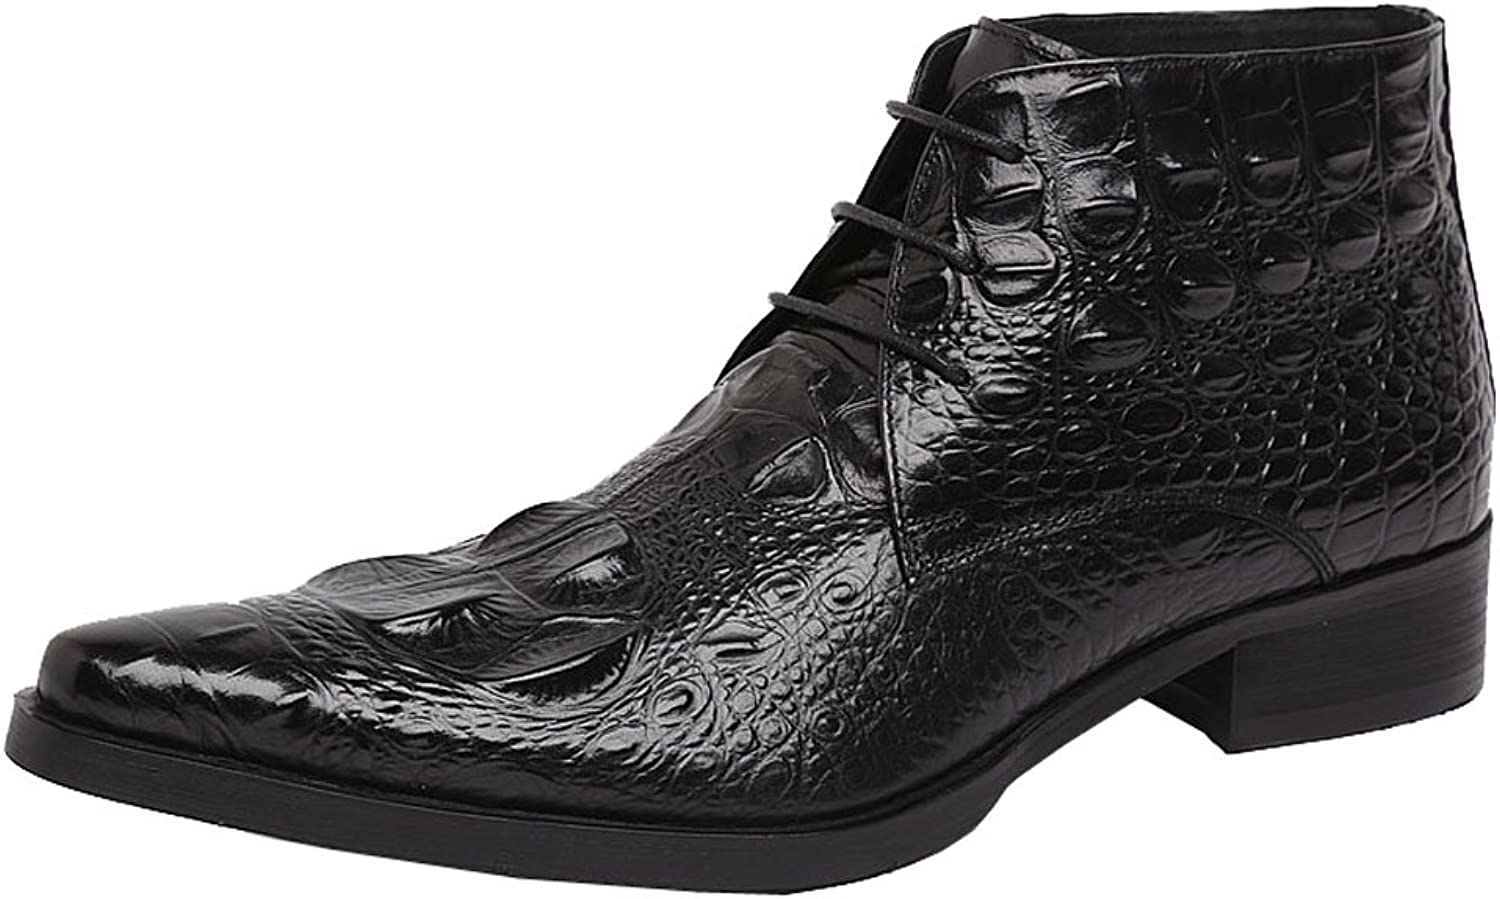 Jsix Real Leather Men's Ankle Boots Lace Up Crocodile Embossed